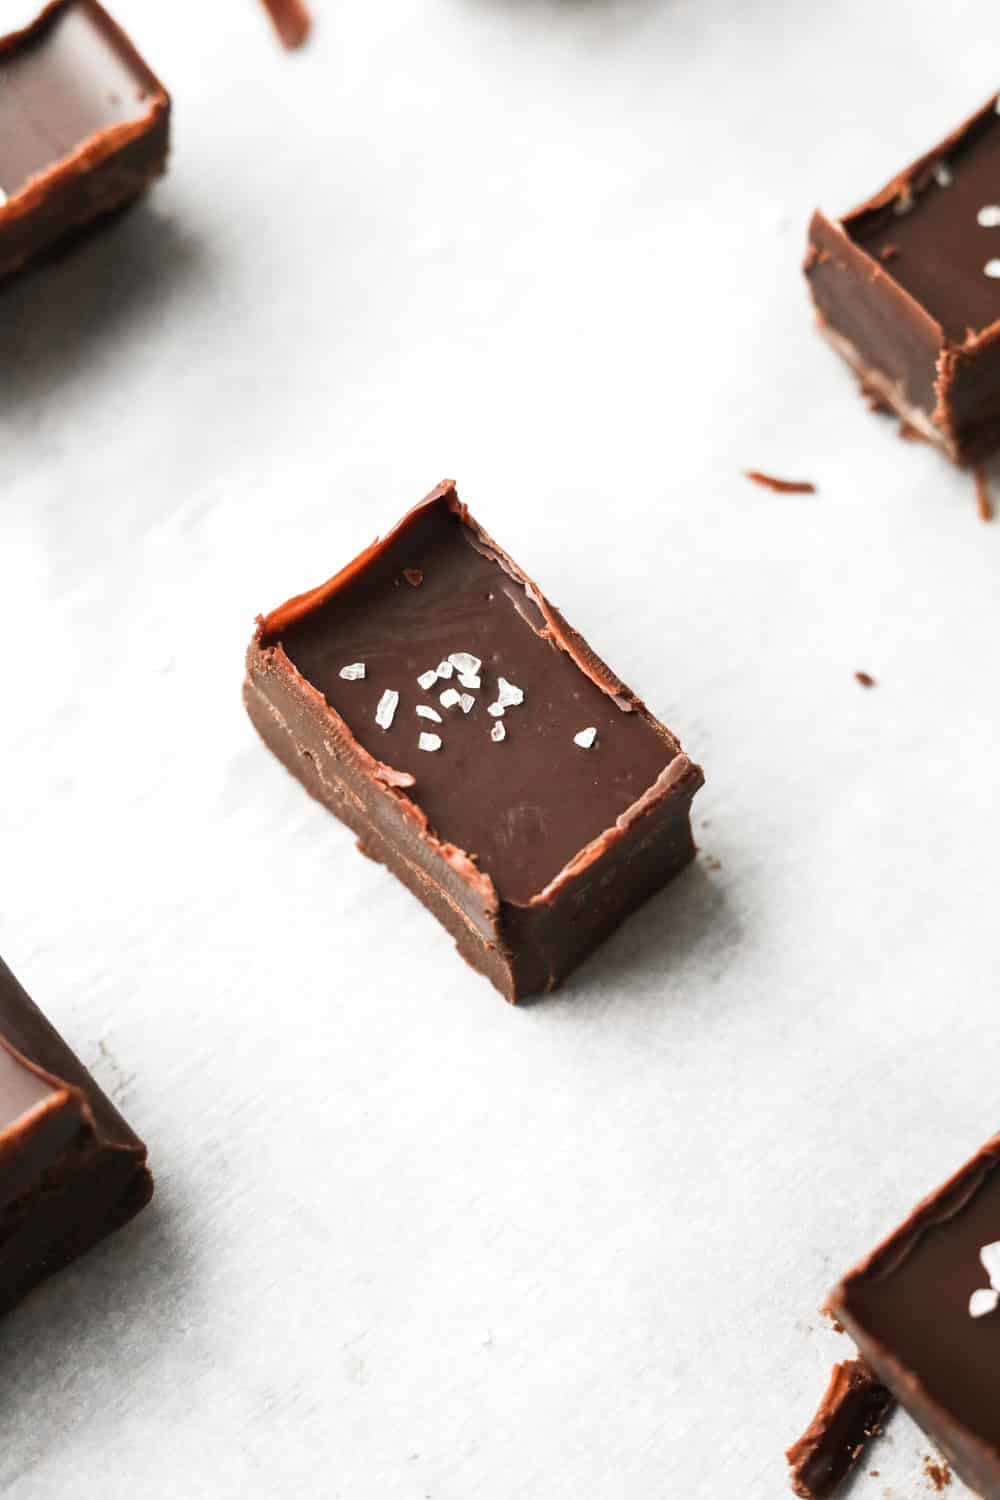 A piece of chocolate fudge on a white piece of paper.